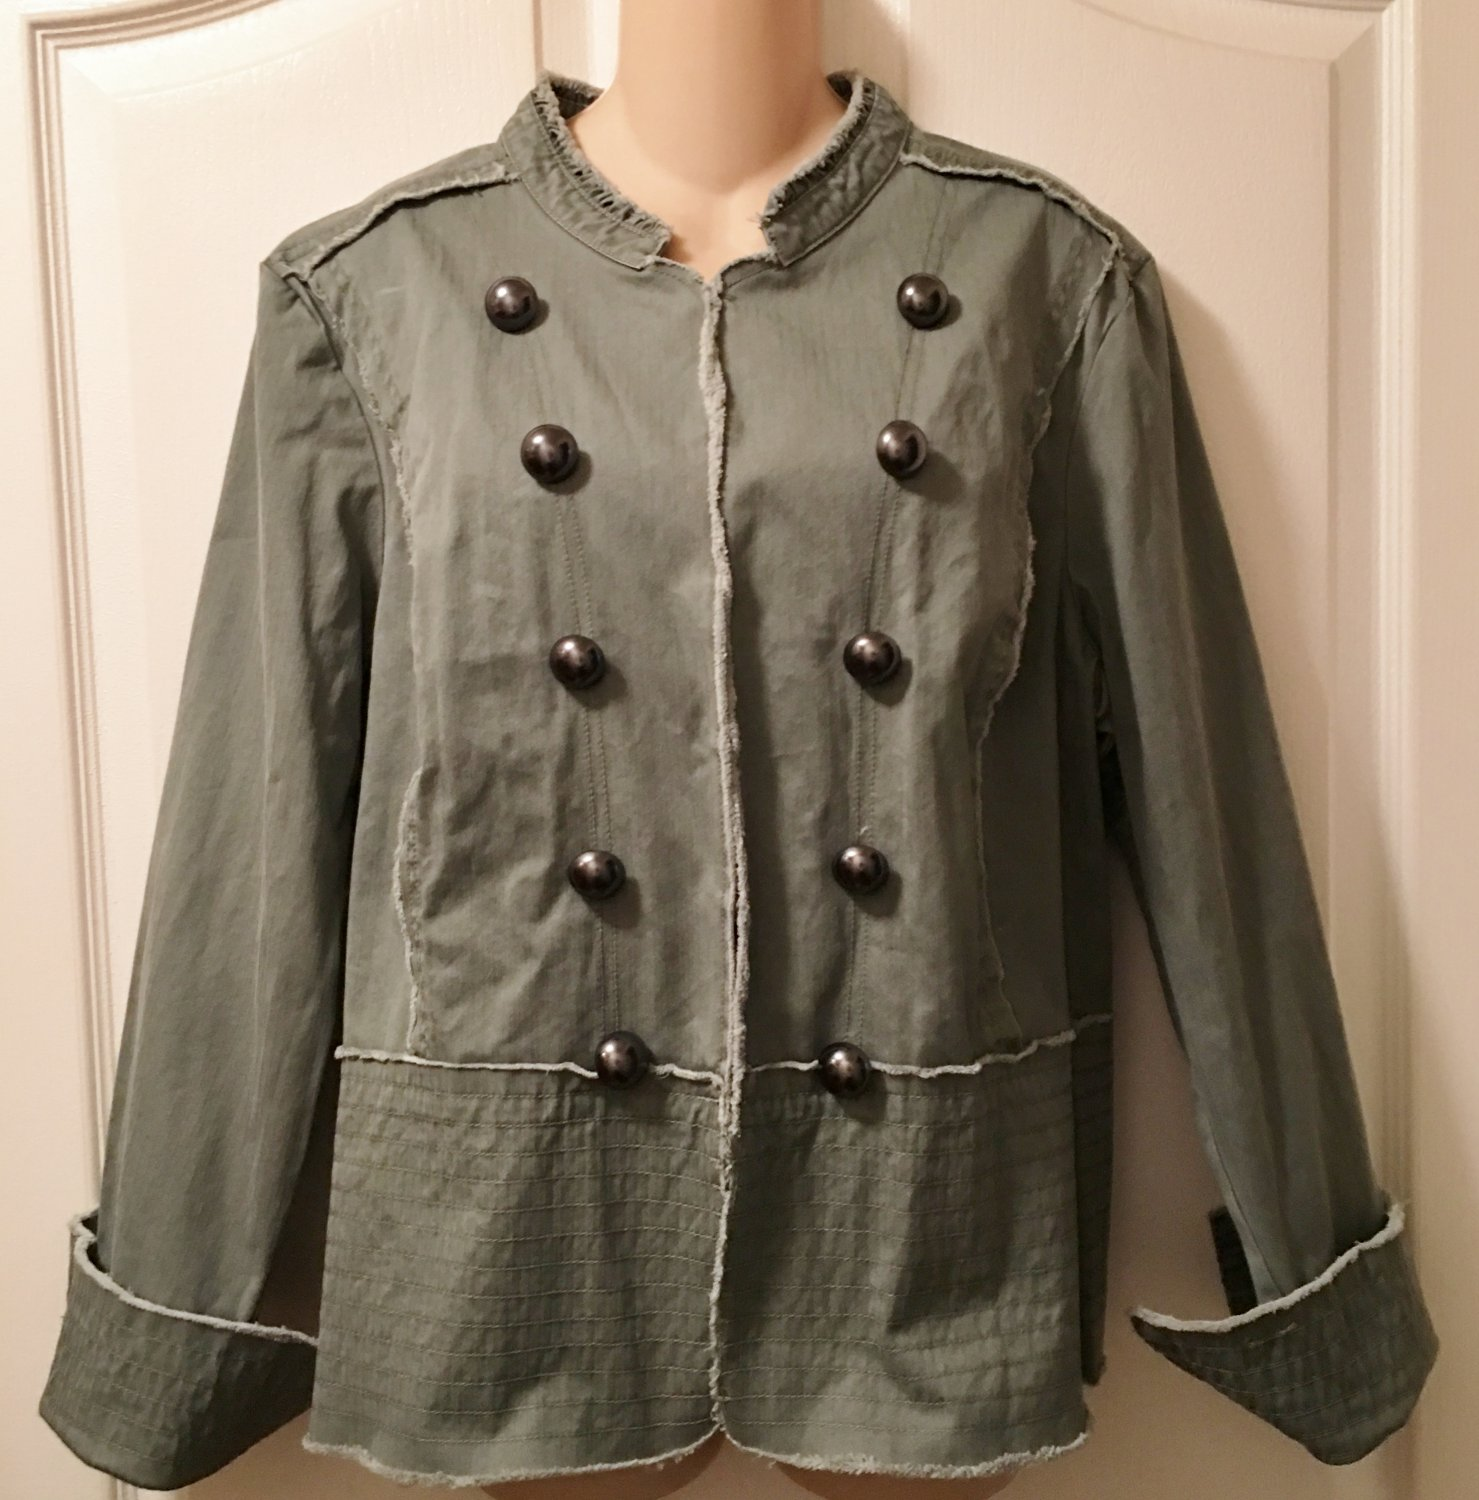 NWT Ladies MILITARY JACKET Old Navy XXL OLIVE GREEN Cotton